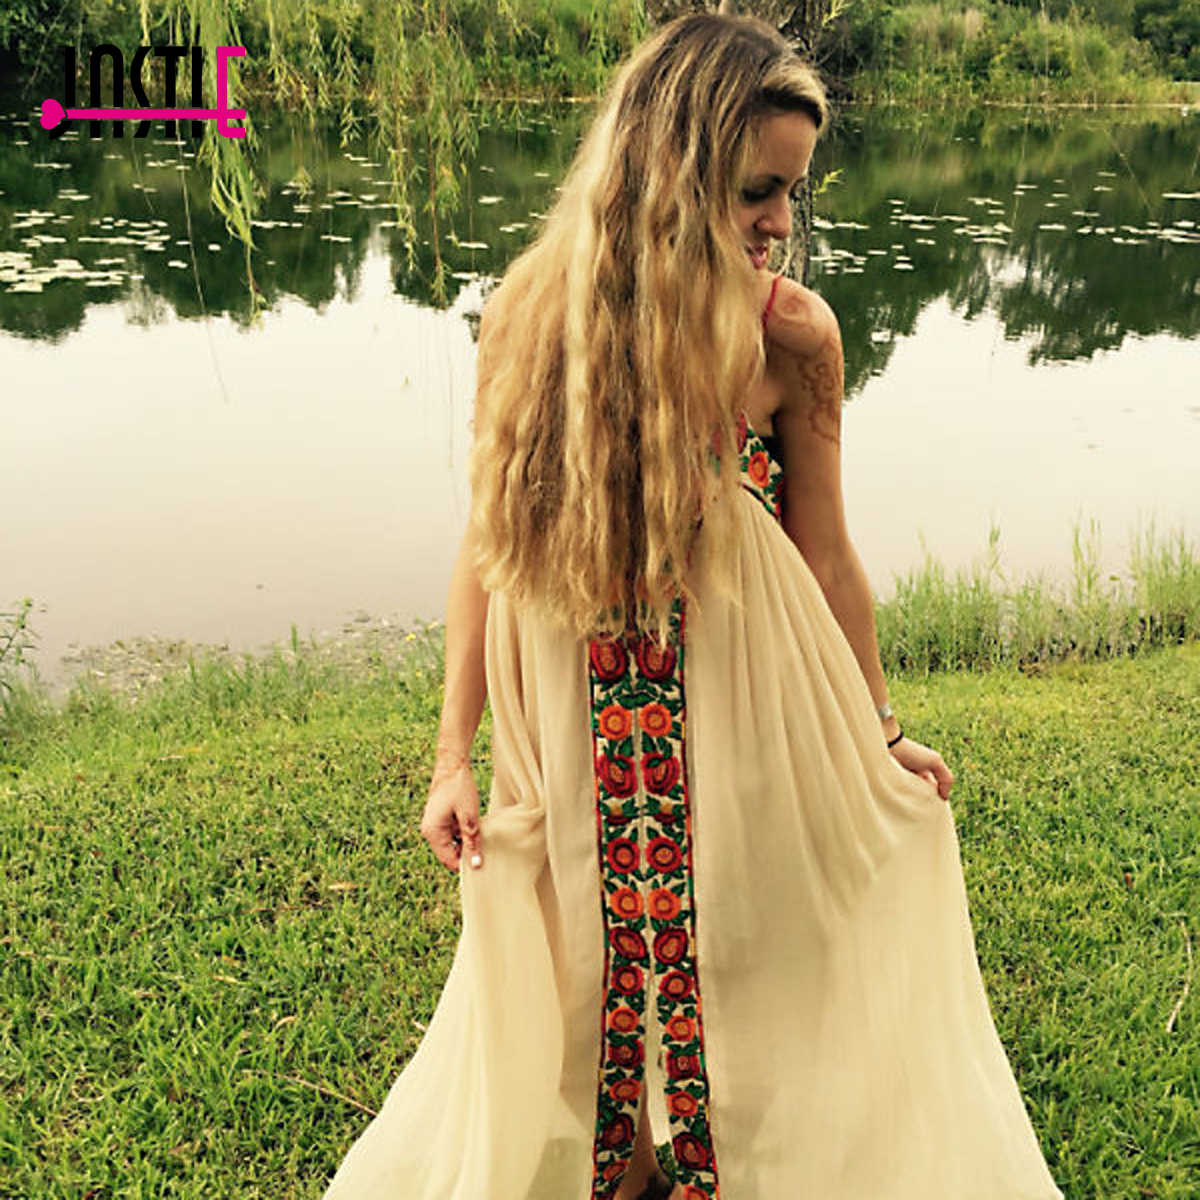 75be1bbb127 ... Jastie Free-Flowing Maxi Dress Floral Embroidery Boho Dress V-Neck  Lace-Up